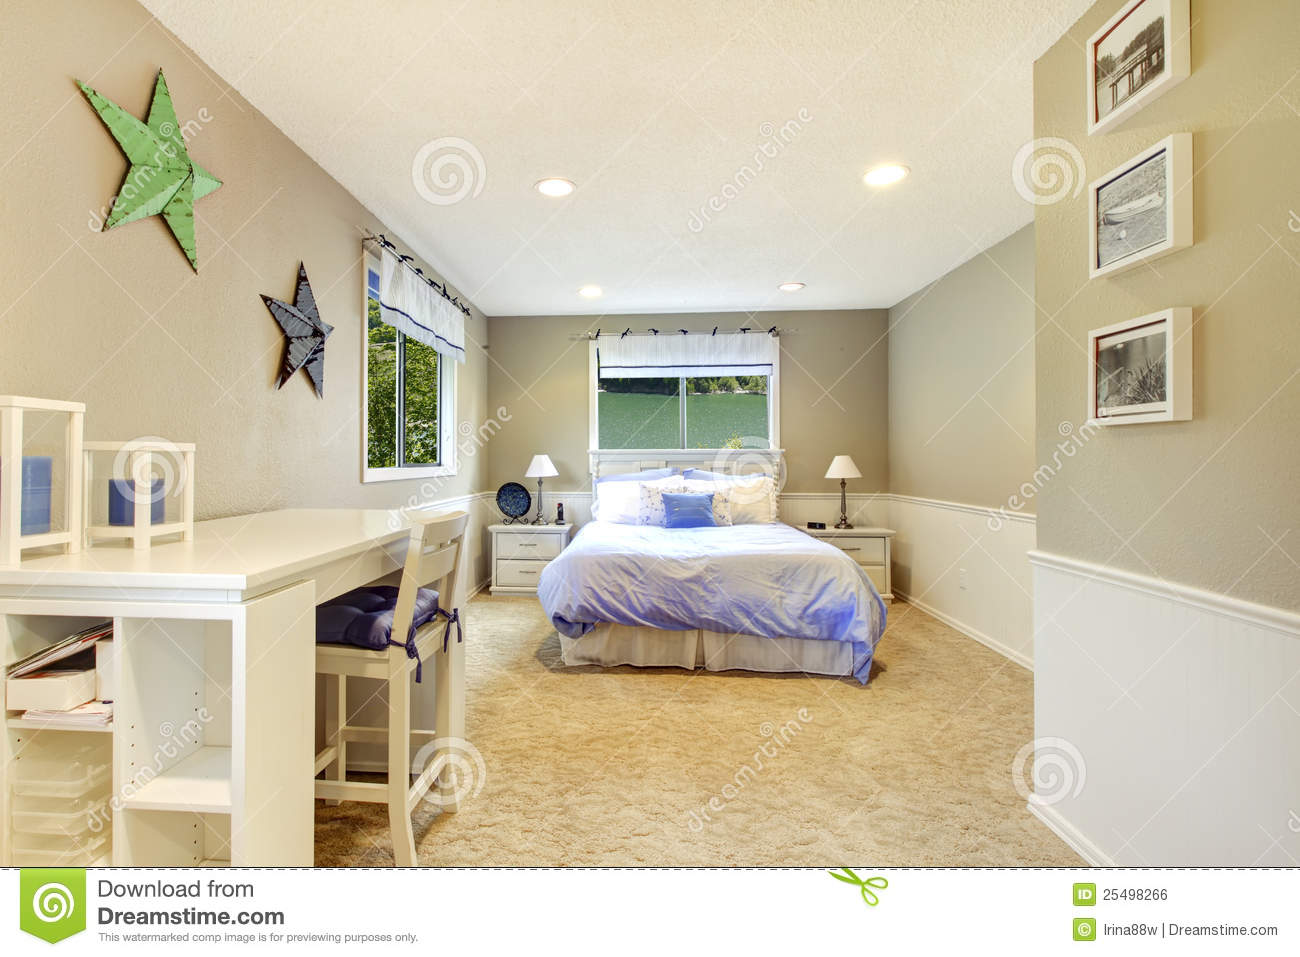 white and beige bedroom interior with blue bed. royalty free stock